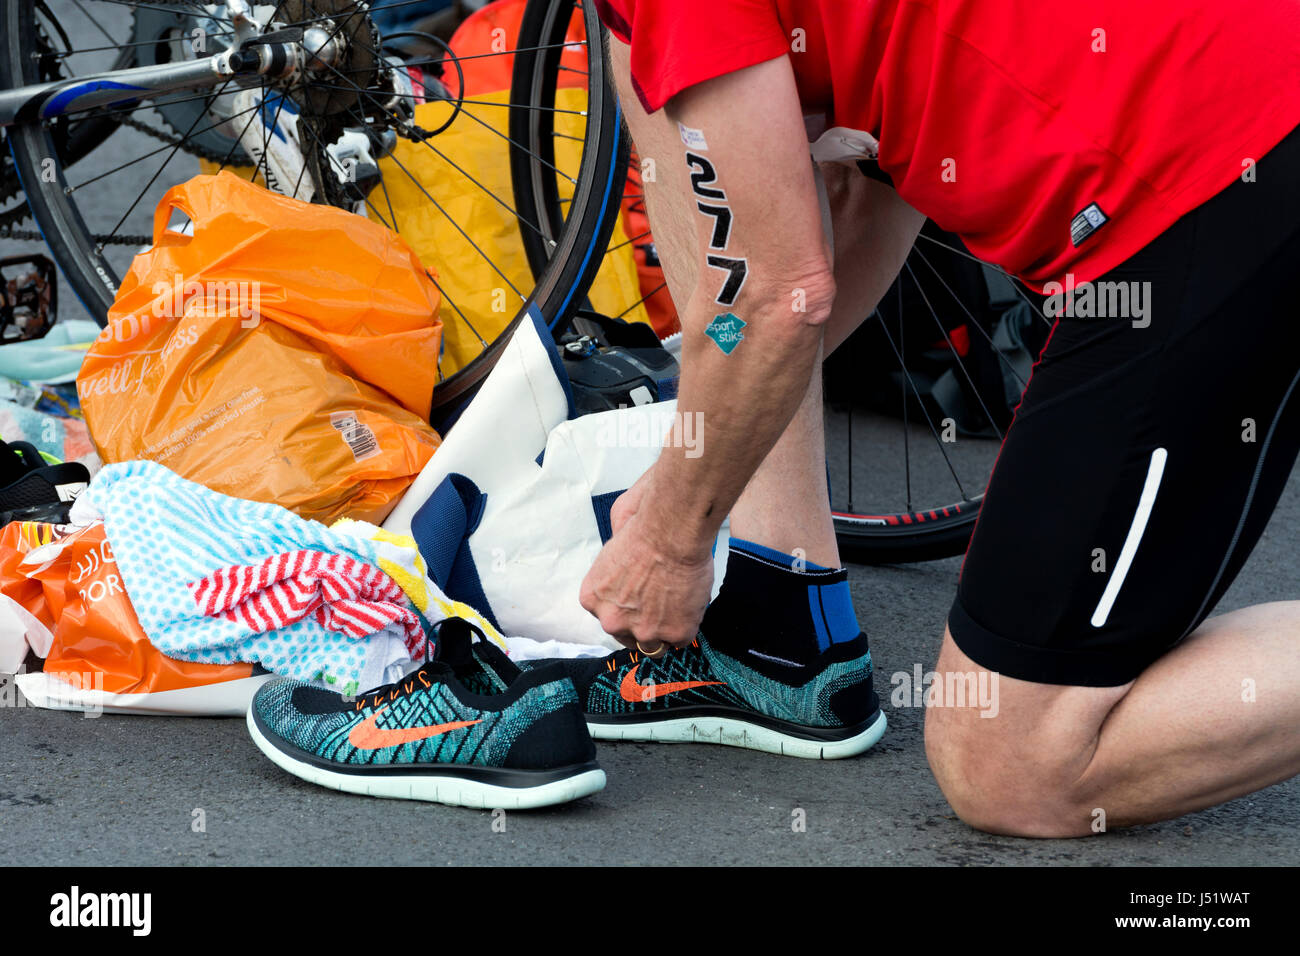 8e2b187237bc9 Male competitor putting on Nike running shoes